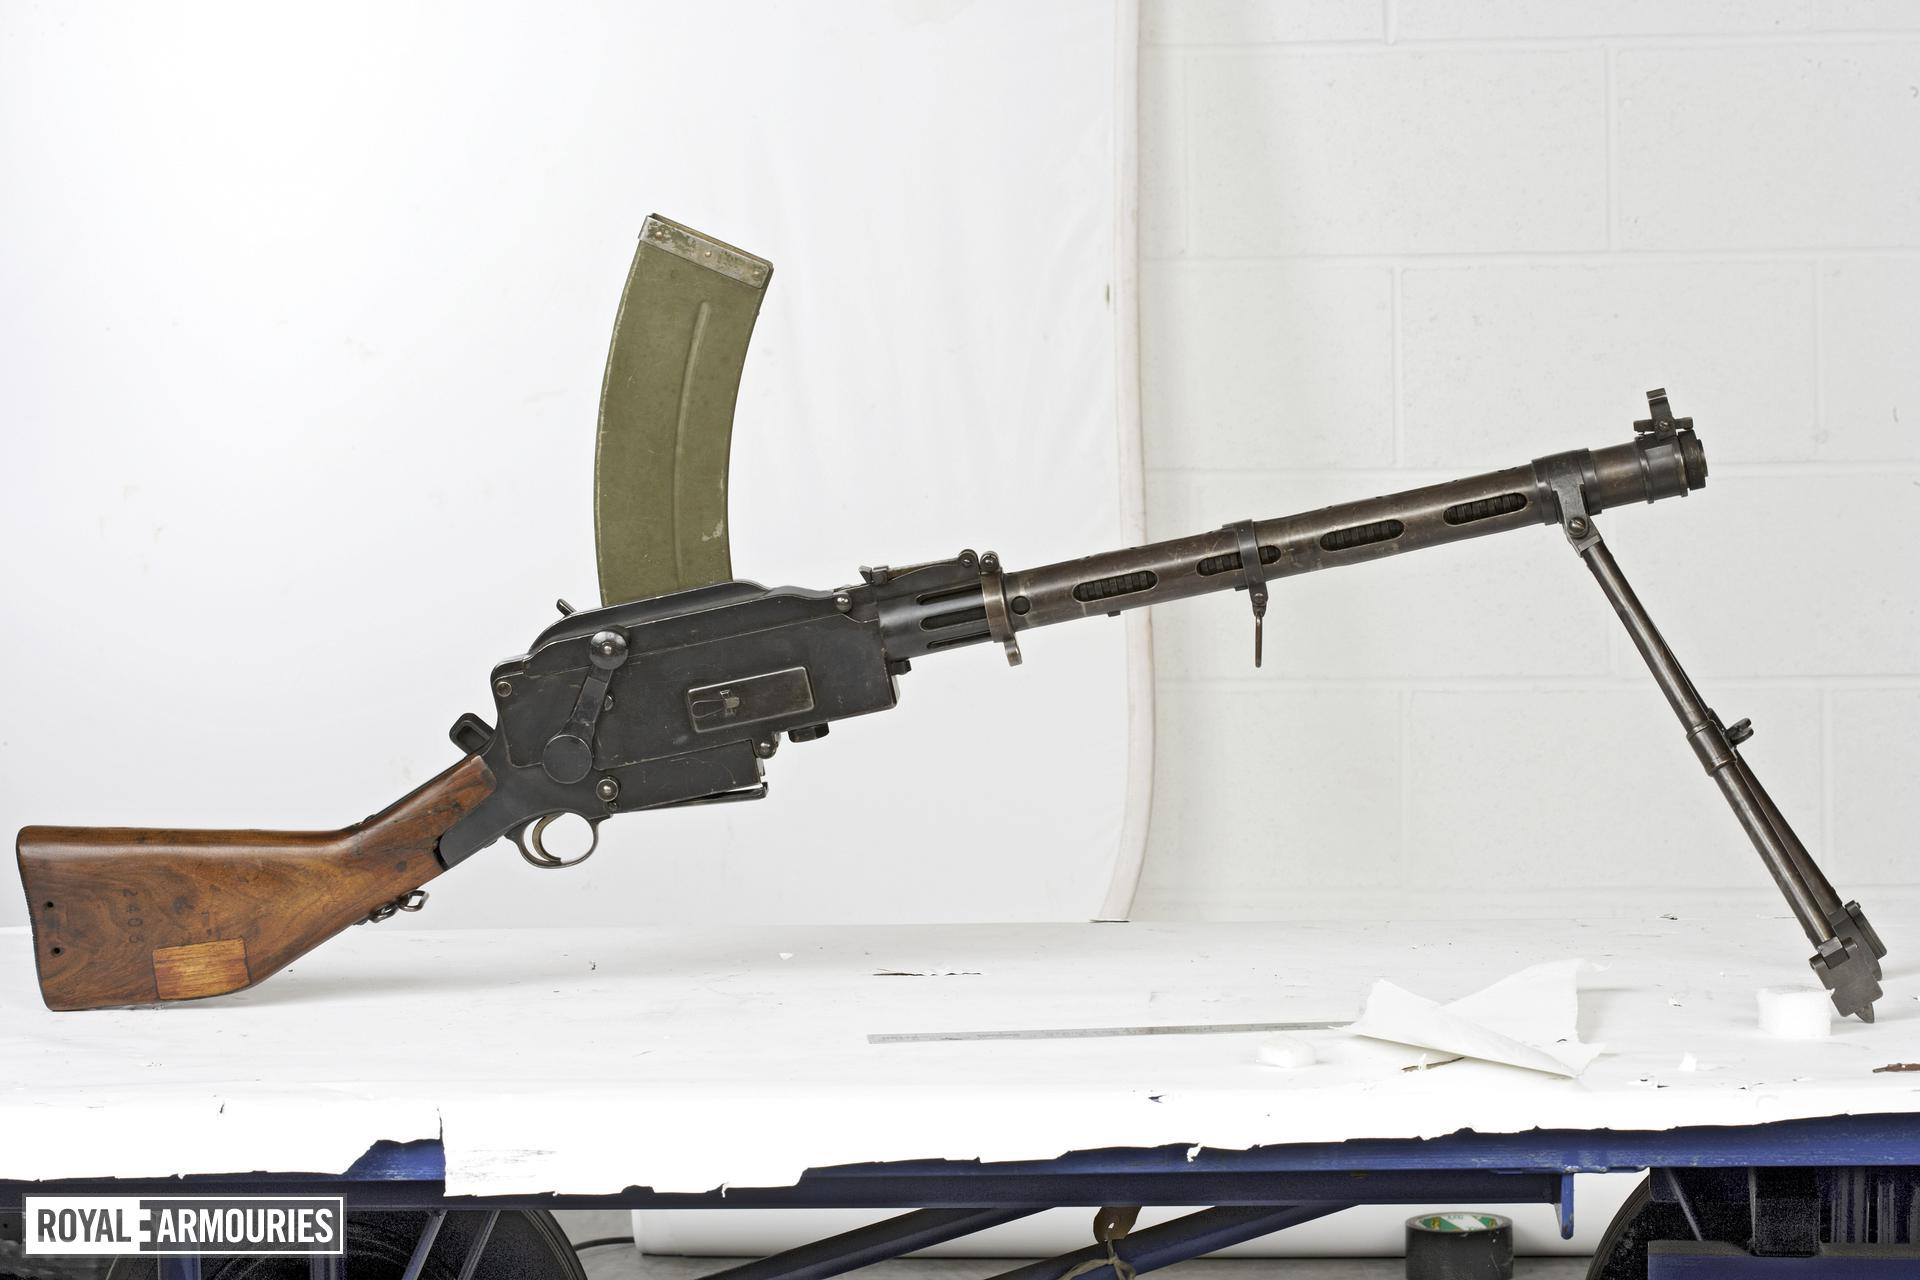 Centrefire automatic light machine gun - Madsen Model 1935